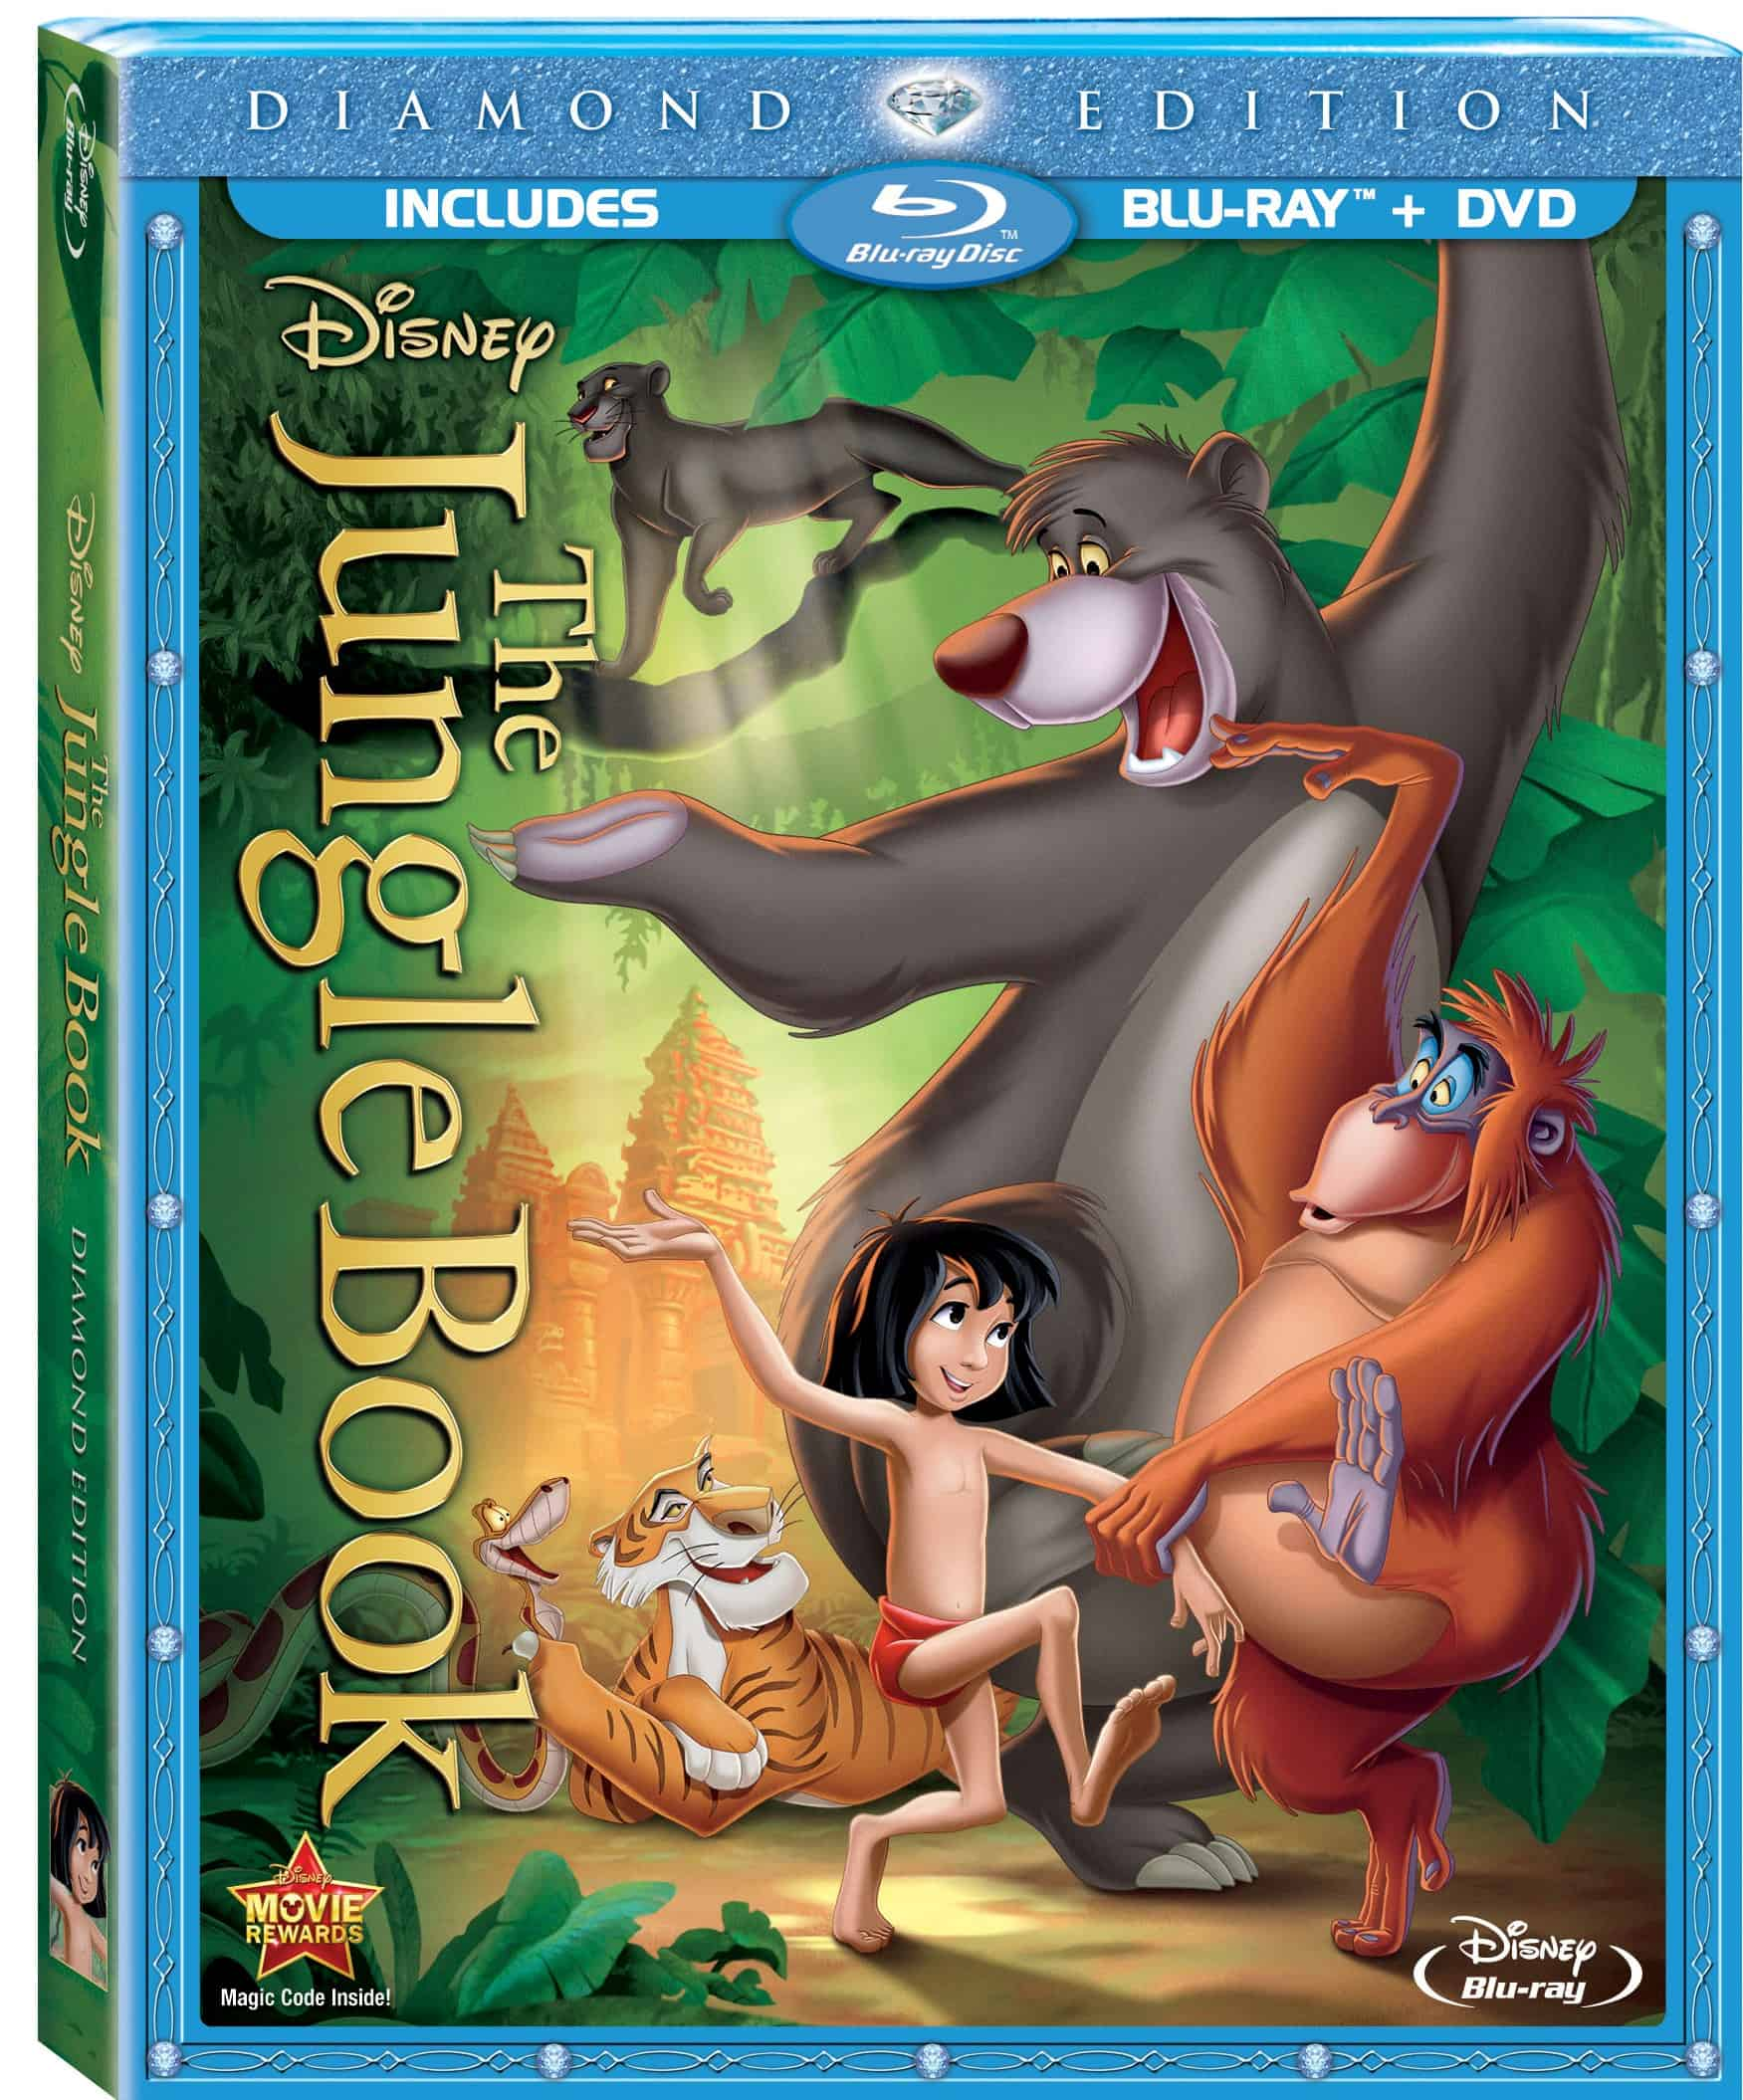 The Jungle Book Swings onto Diamond Edition Blu-ray 2/11/14